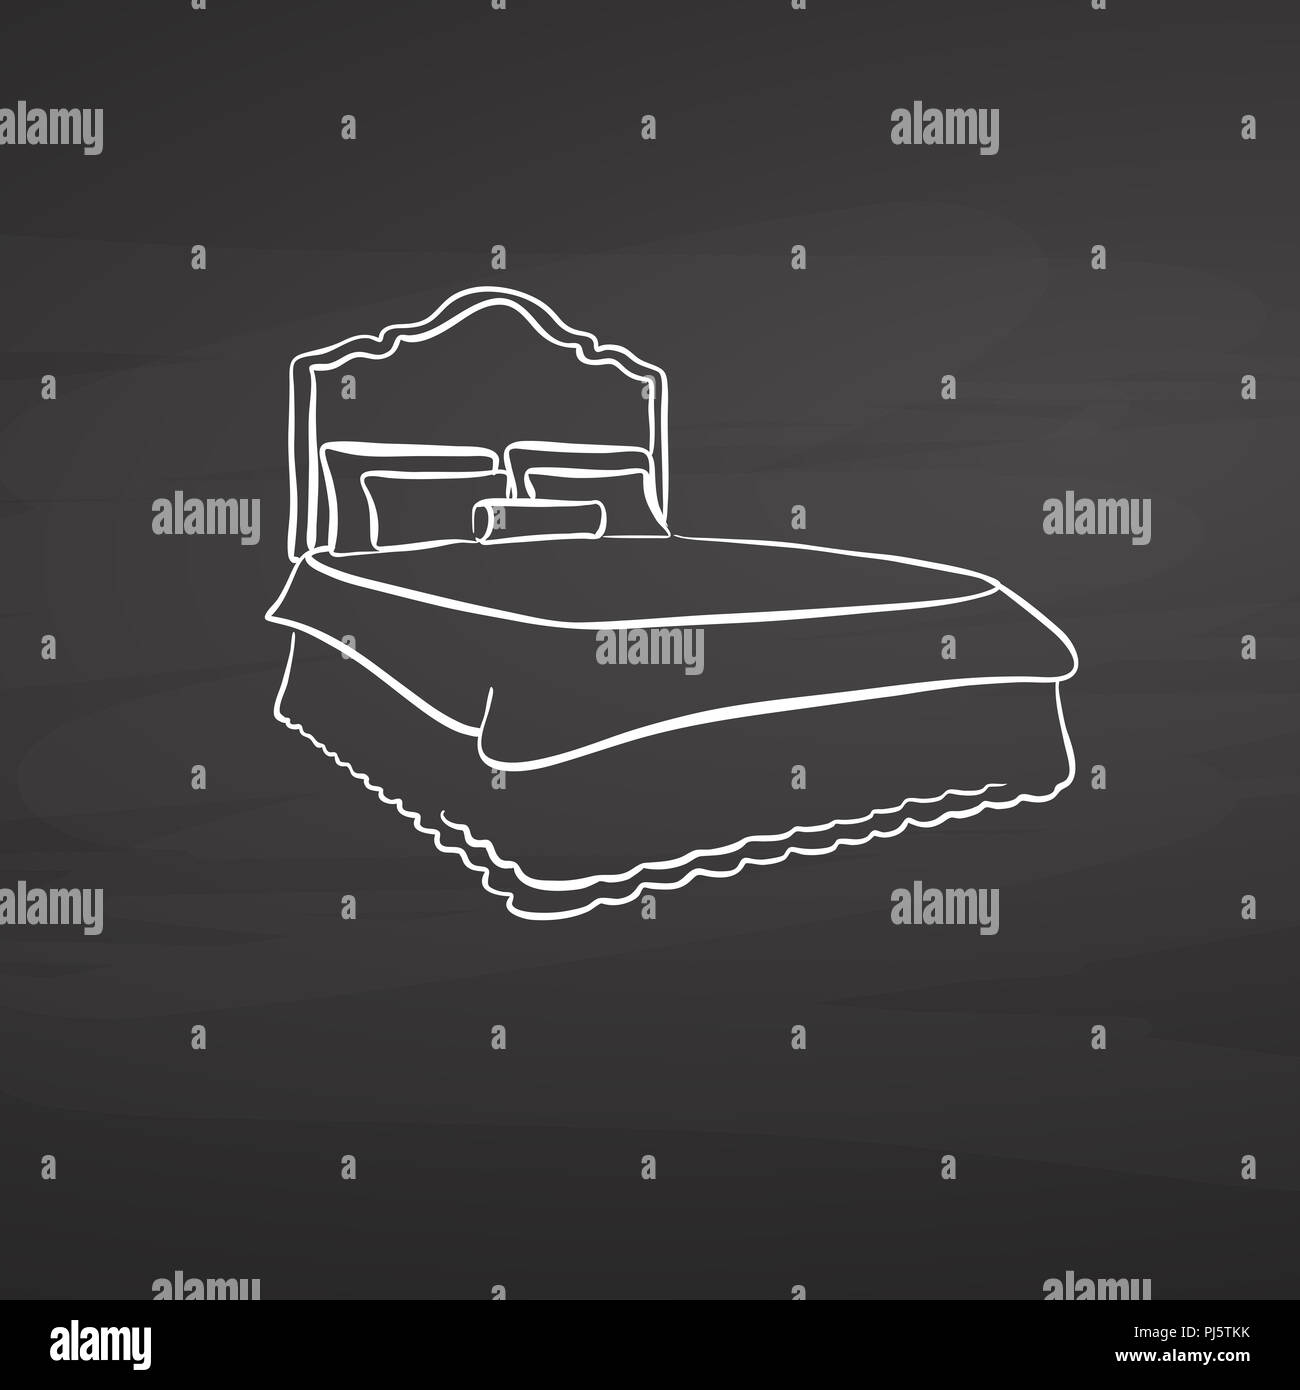 bed drawing on chalkboard. hand-drawn vector sketch. business concept design. - Stock Image